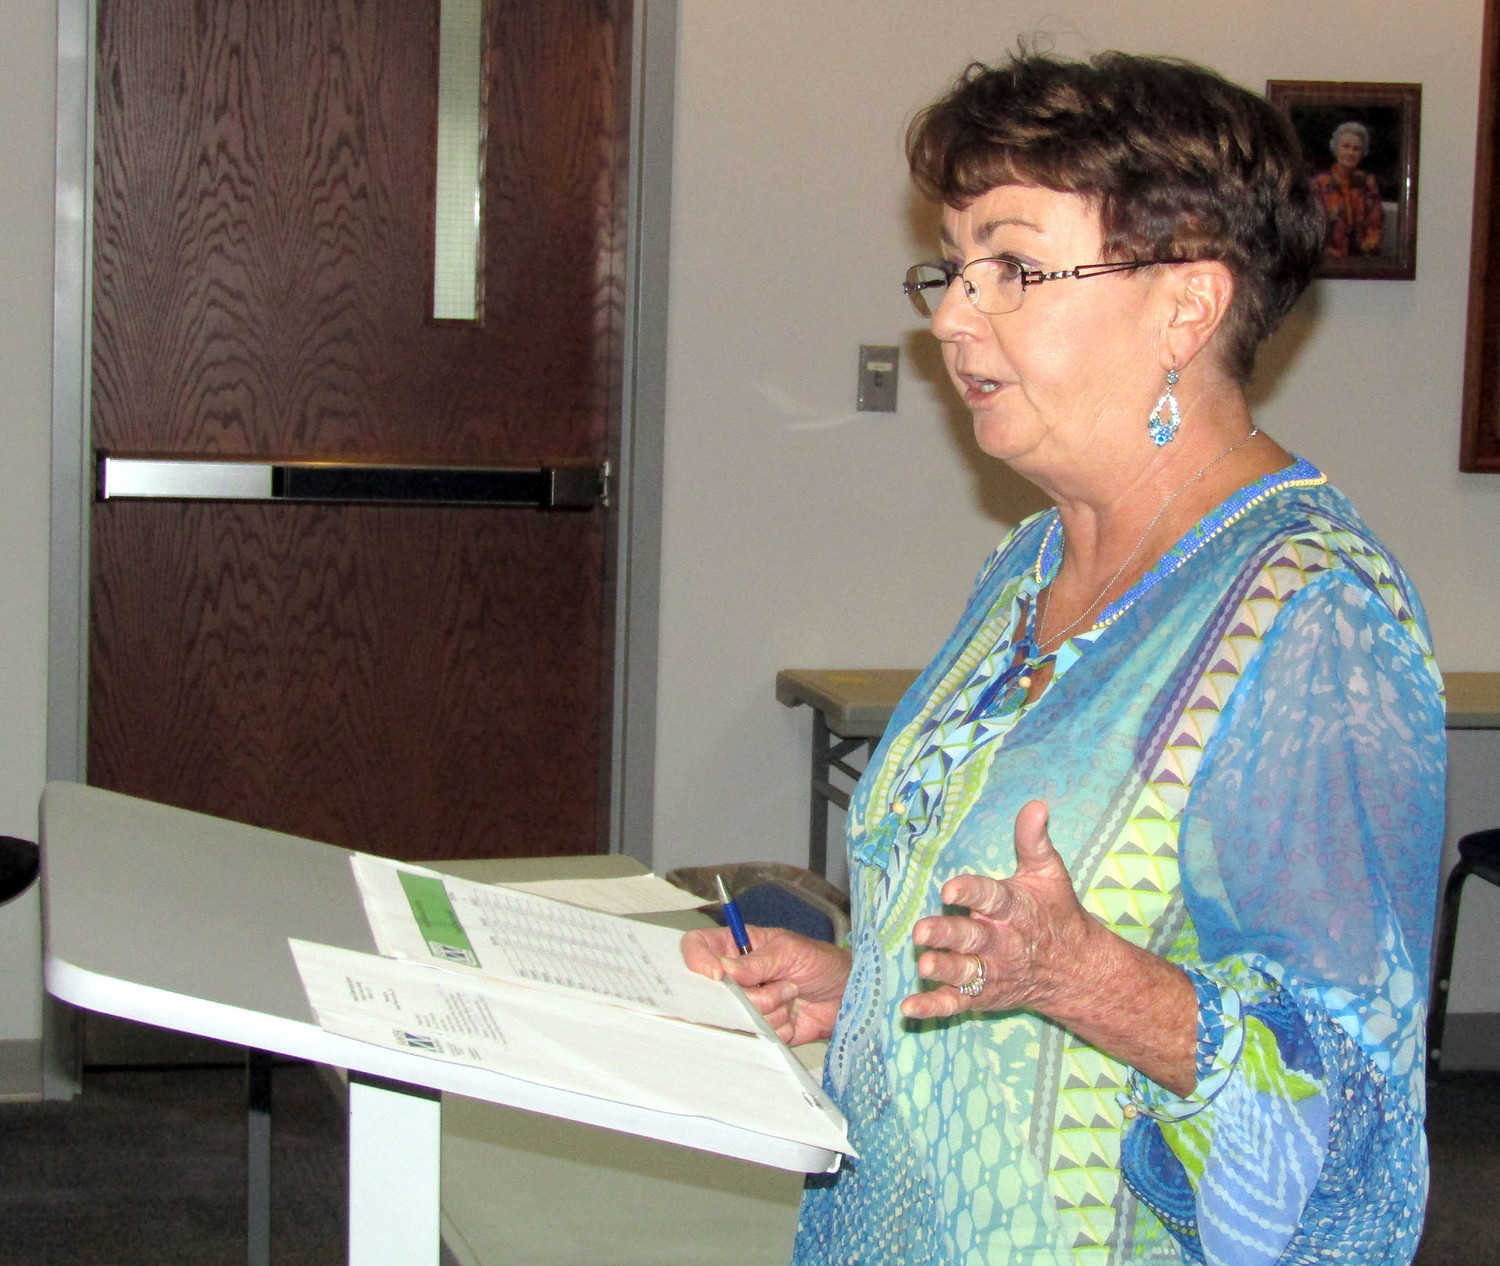 CHERYL DUNSON, Santek vice president of marketing, gave the annual county landfill report to the Bradley County Commission on Monday afternoon.